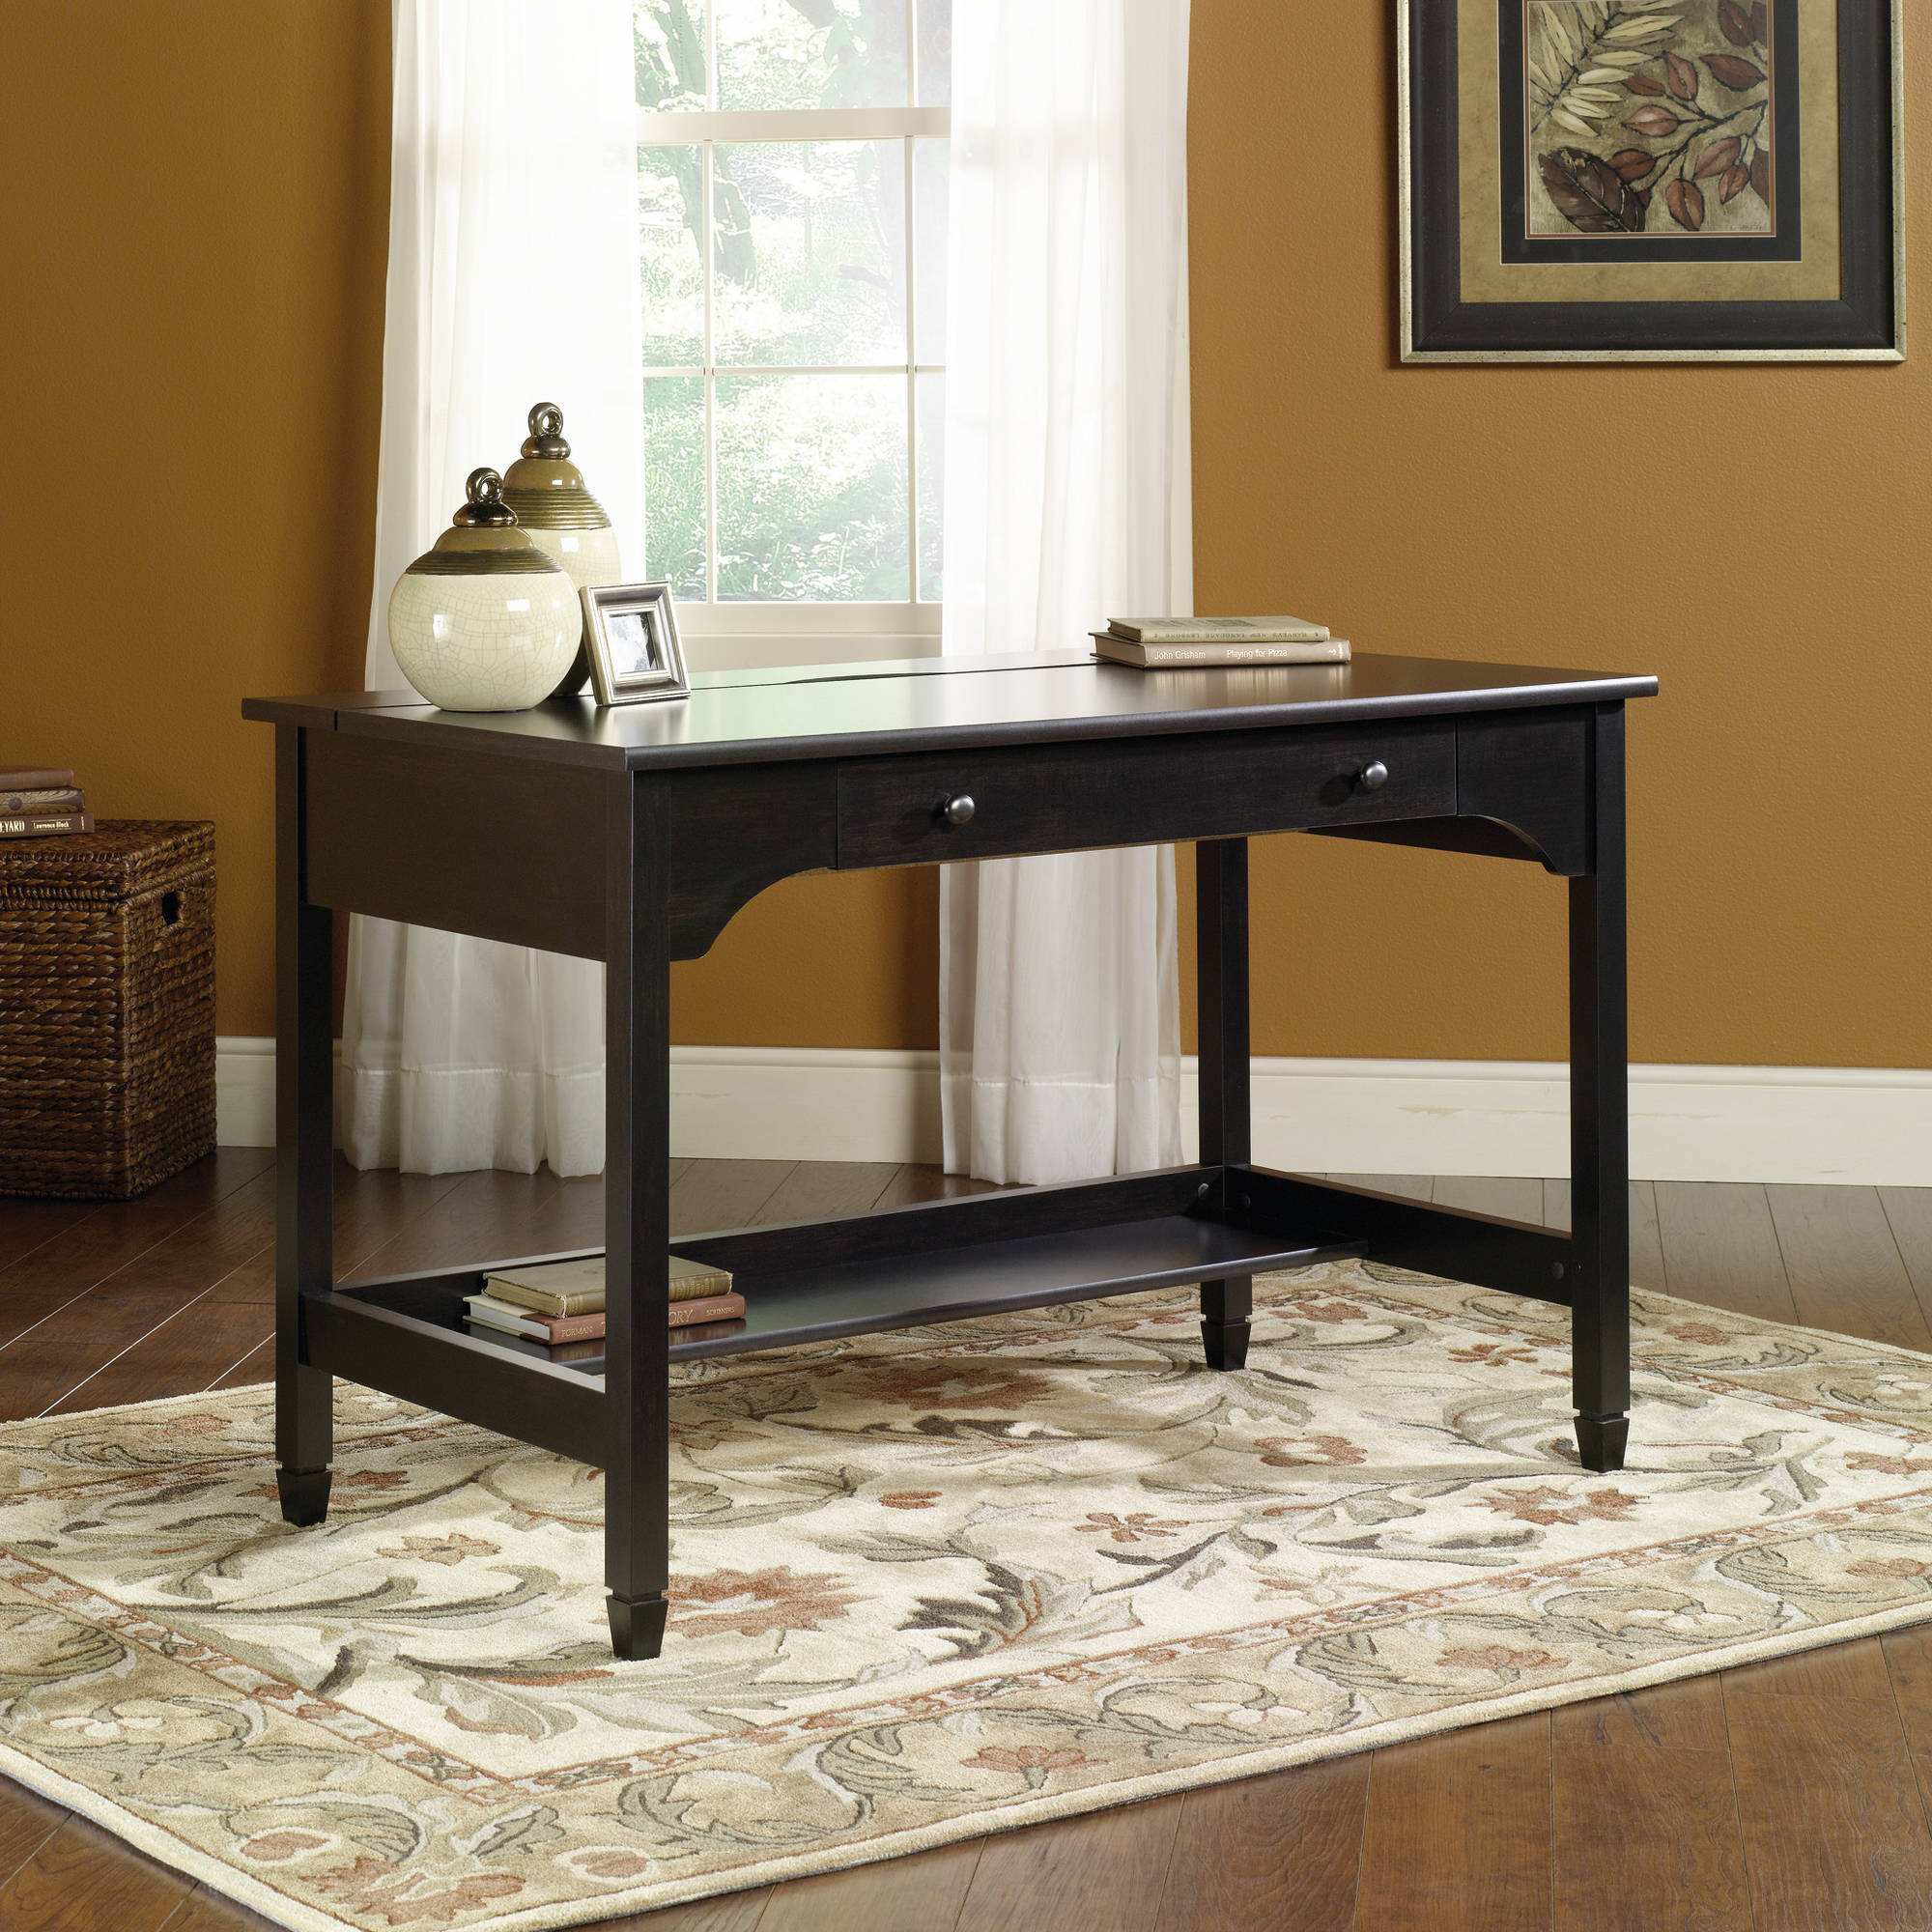 Sauder Edge Water Mobile Lifestyle Desk, Estate Black